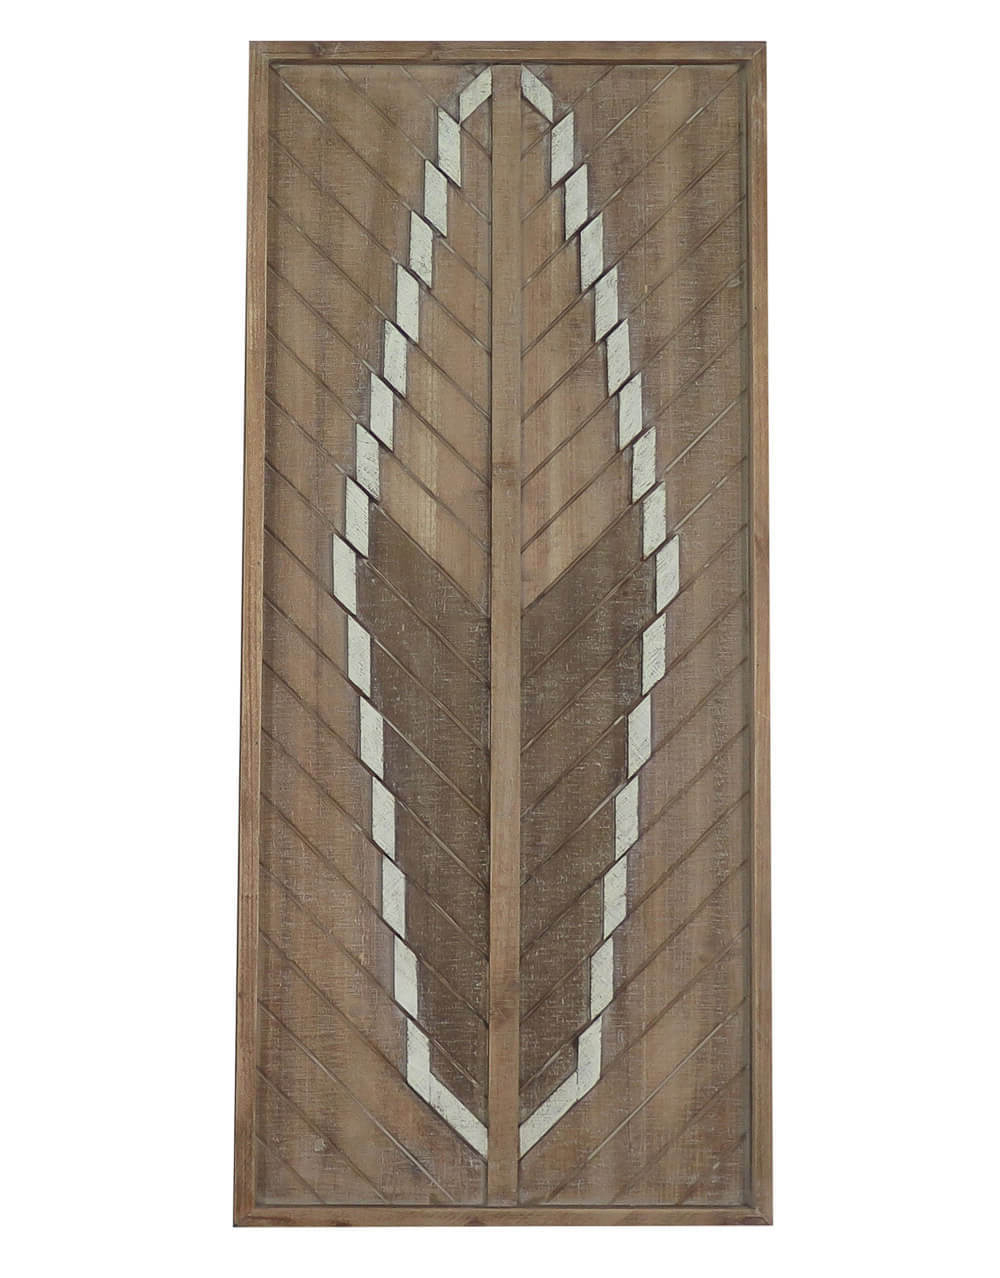 Most Recently Released Buy Arrow Feather Detail Large Frame Wall Tribal Art Decor With Regard To Brown Metal Tribal Arrow Wall Decor (View 15 of 20)